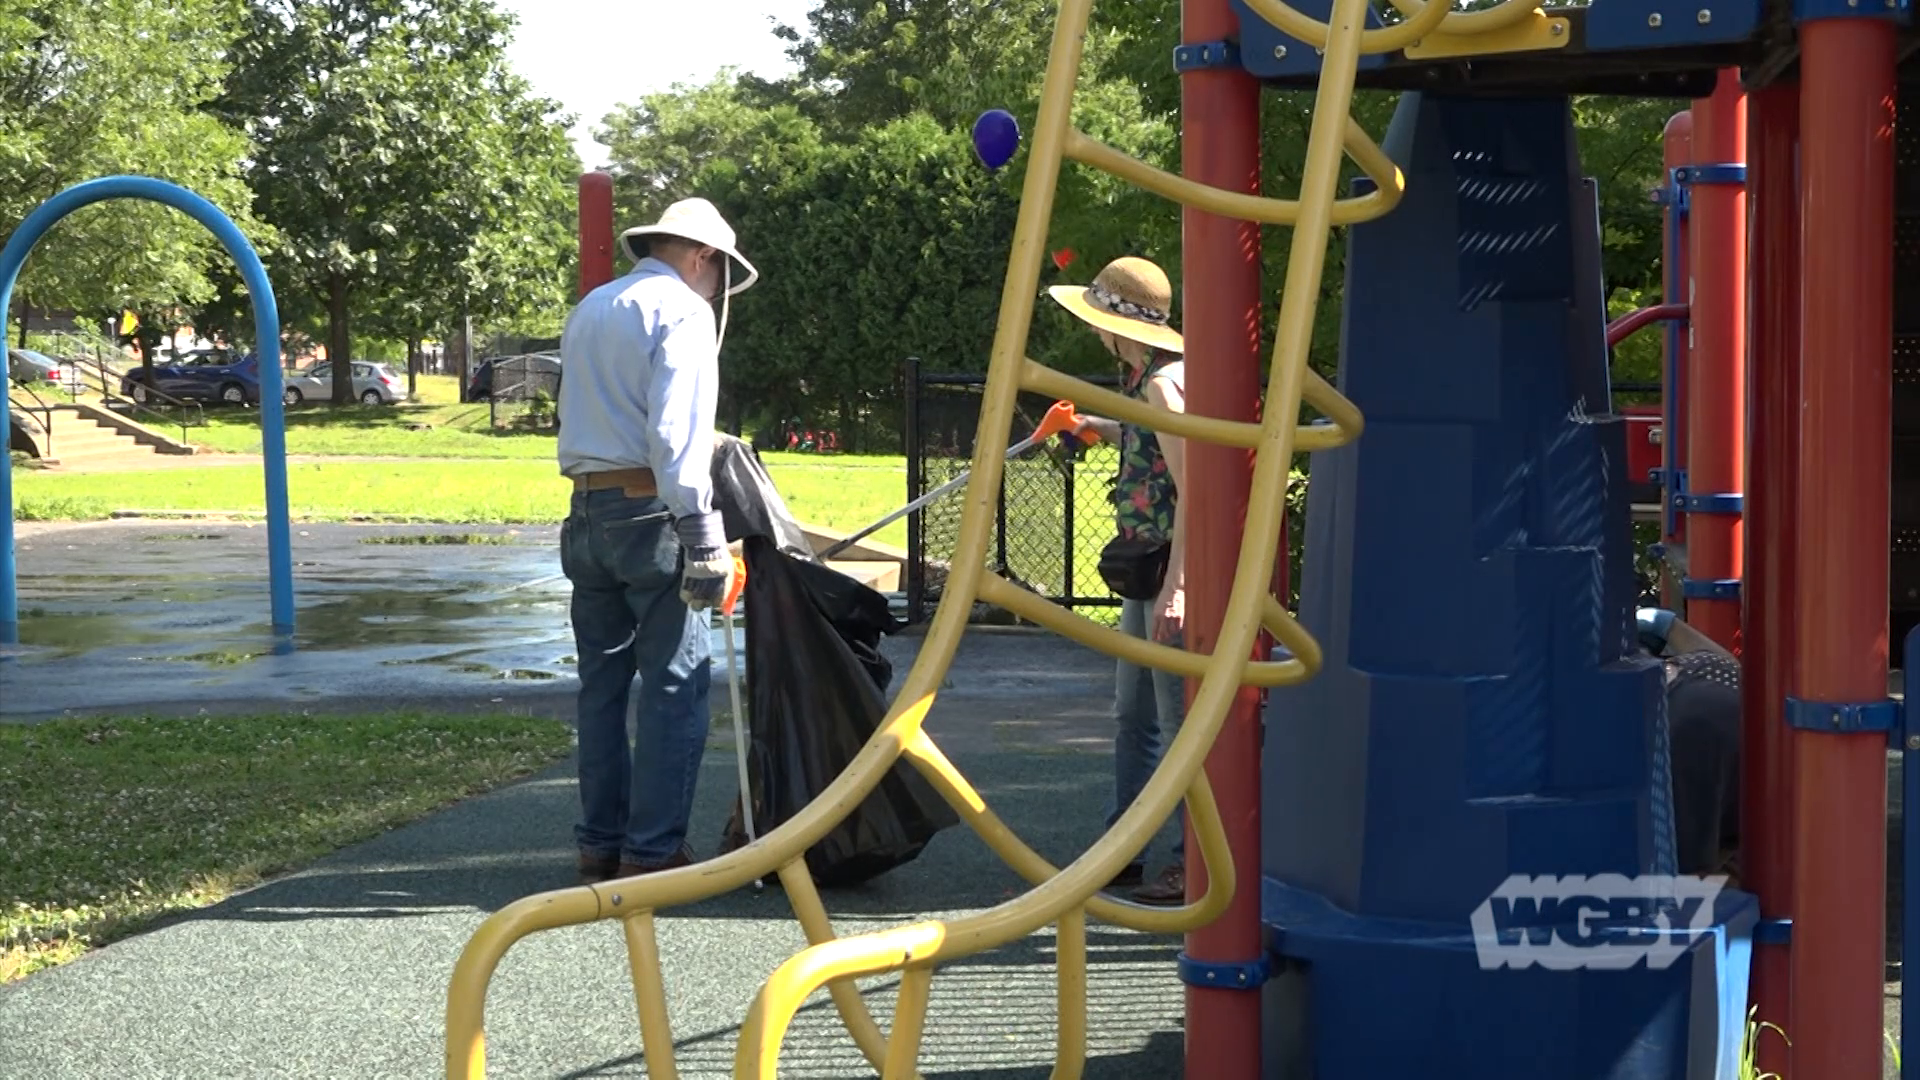 Join a group of OneHolyoke CDC Keep It Clean Holyoke volunteers as they clean-up and beautify Chestnut Street Park in the Paper City.